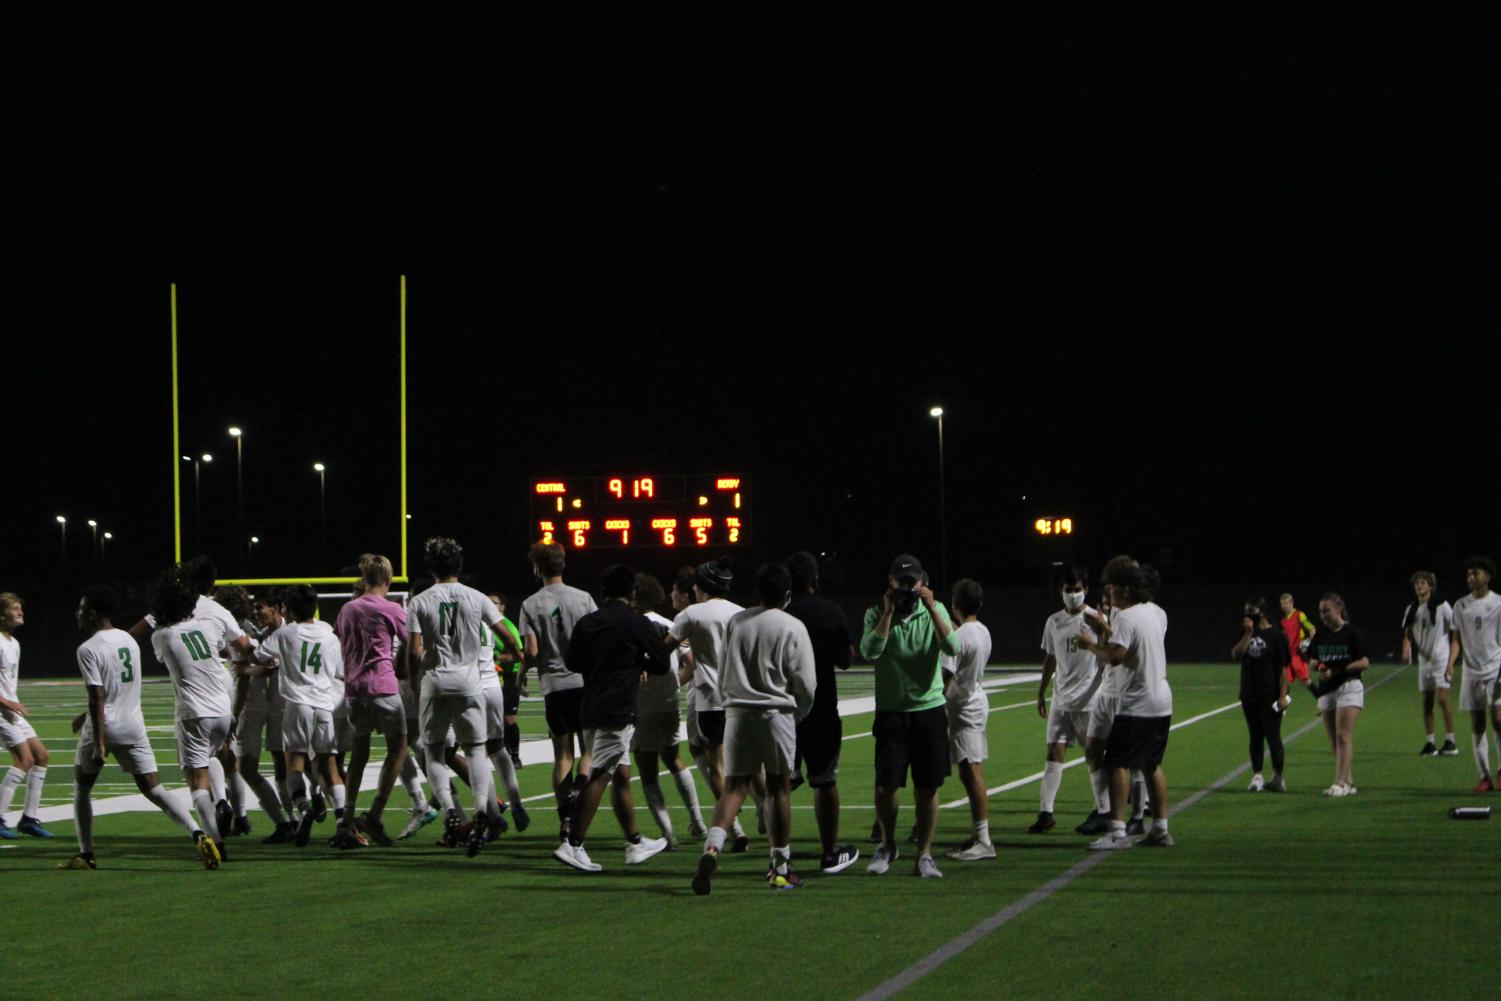 Derby+vs+Andover+Central+Soccer+Game+%28photos+by+Talia+Ransom%29